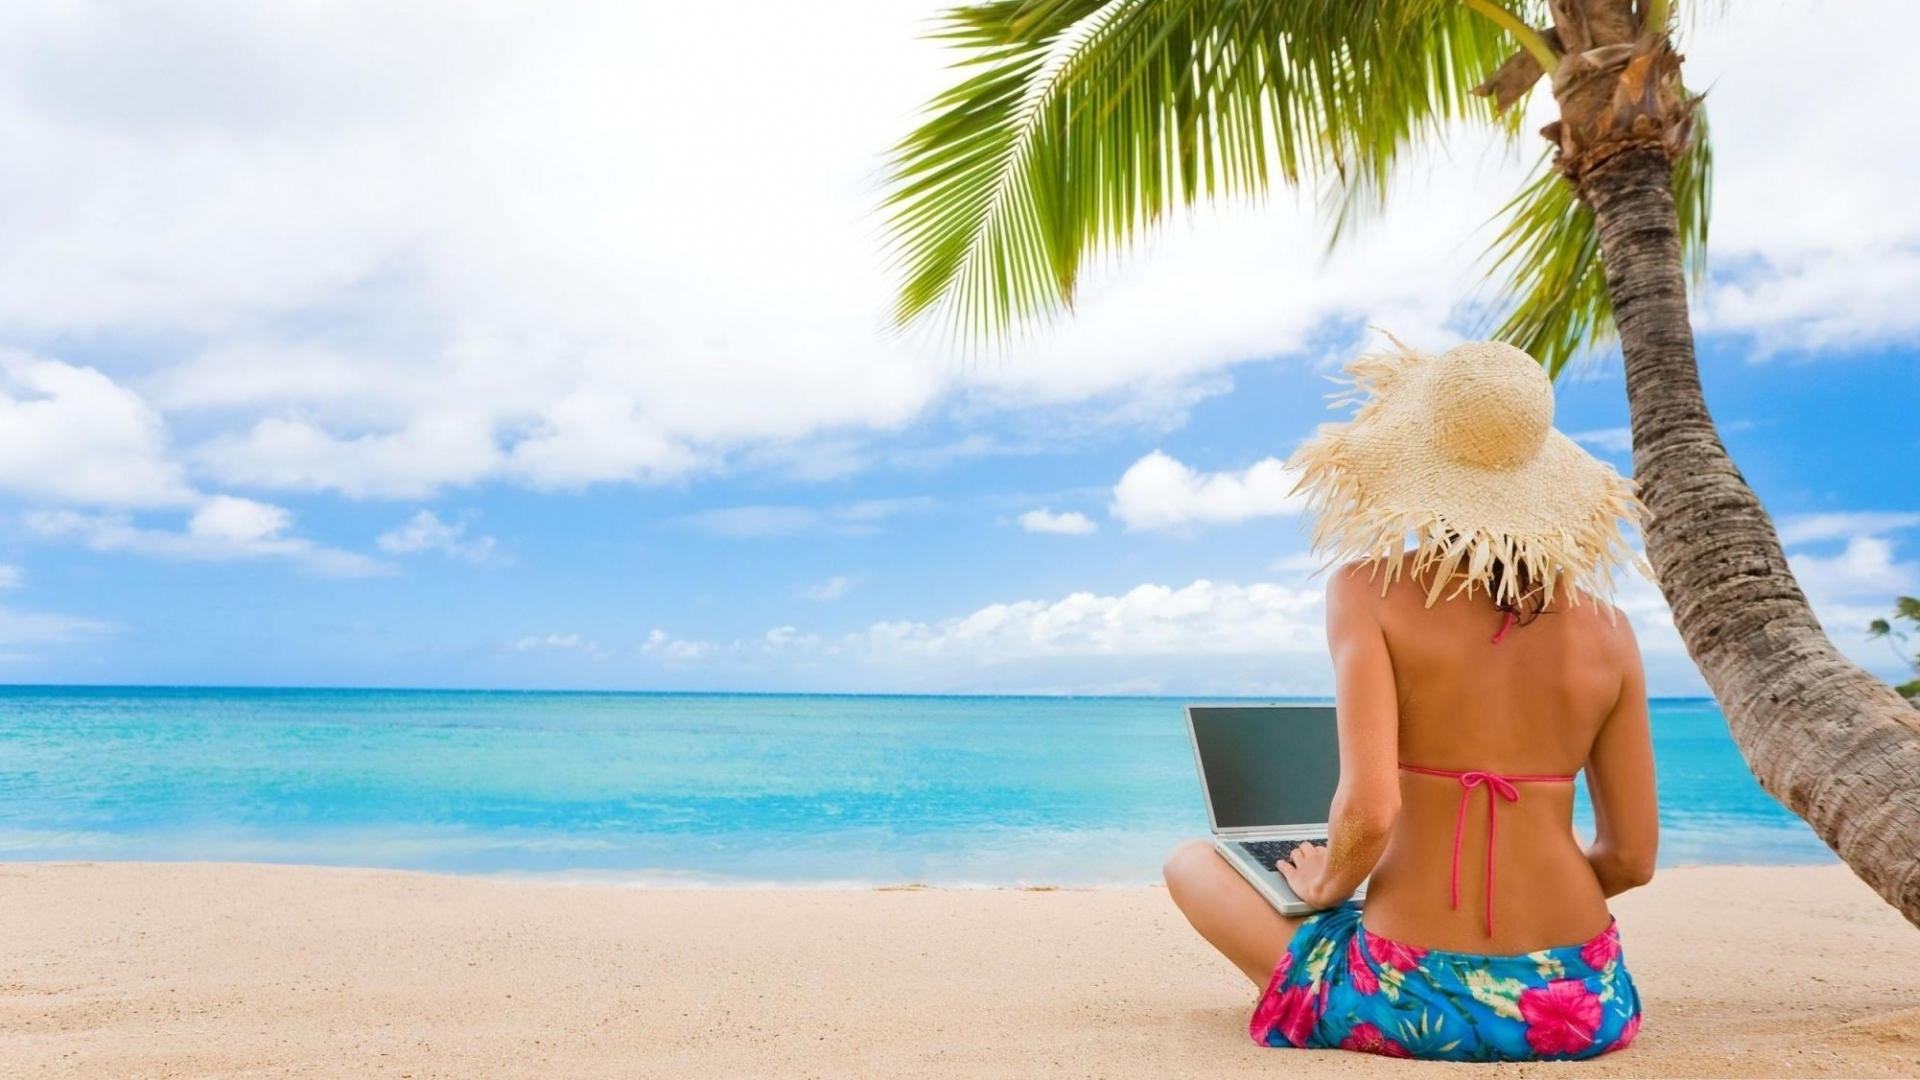 girl-using-laptop-in-tropical-beach-wallpaper